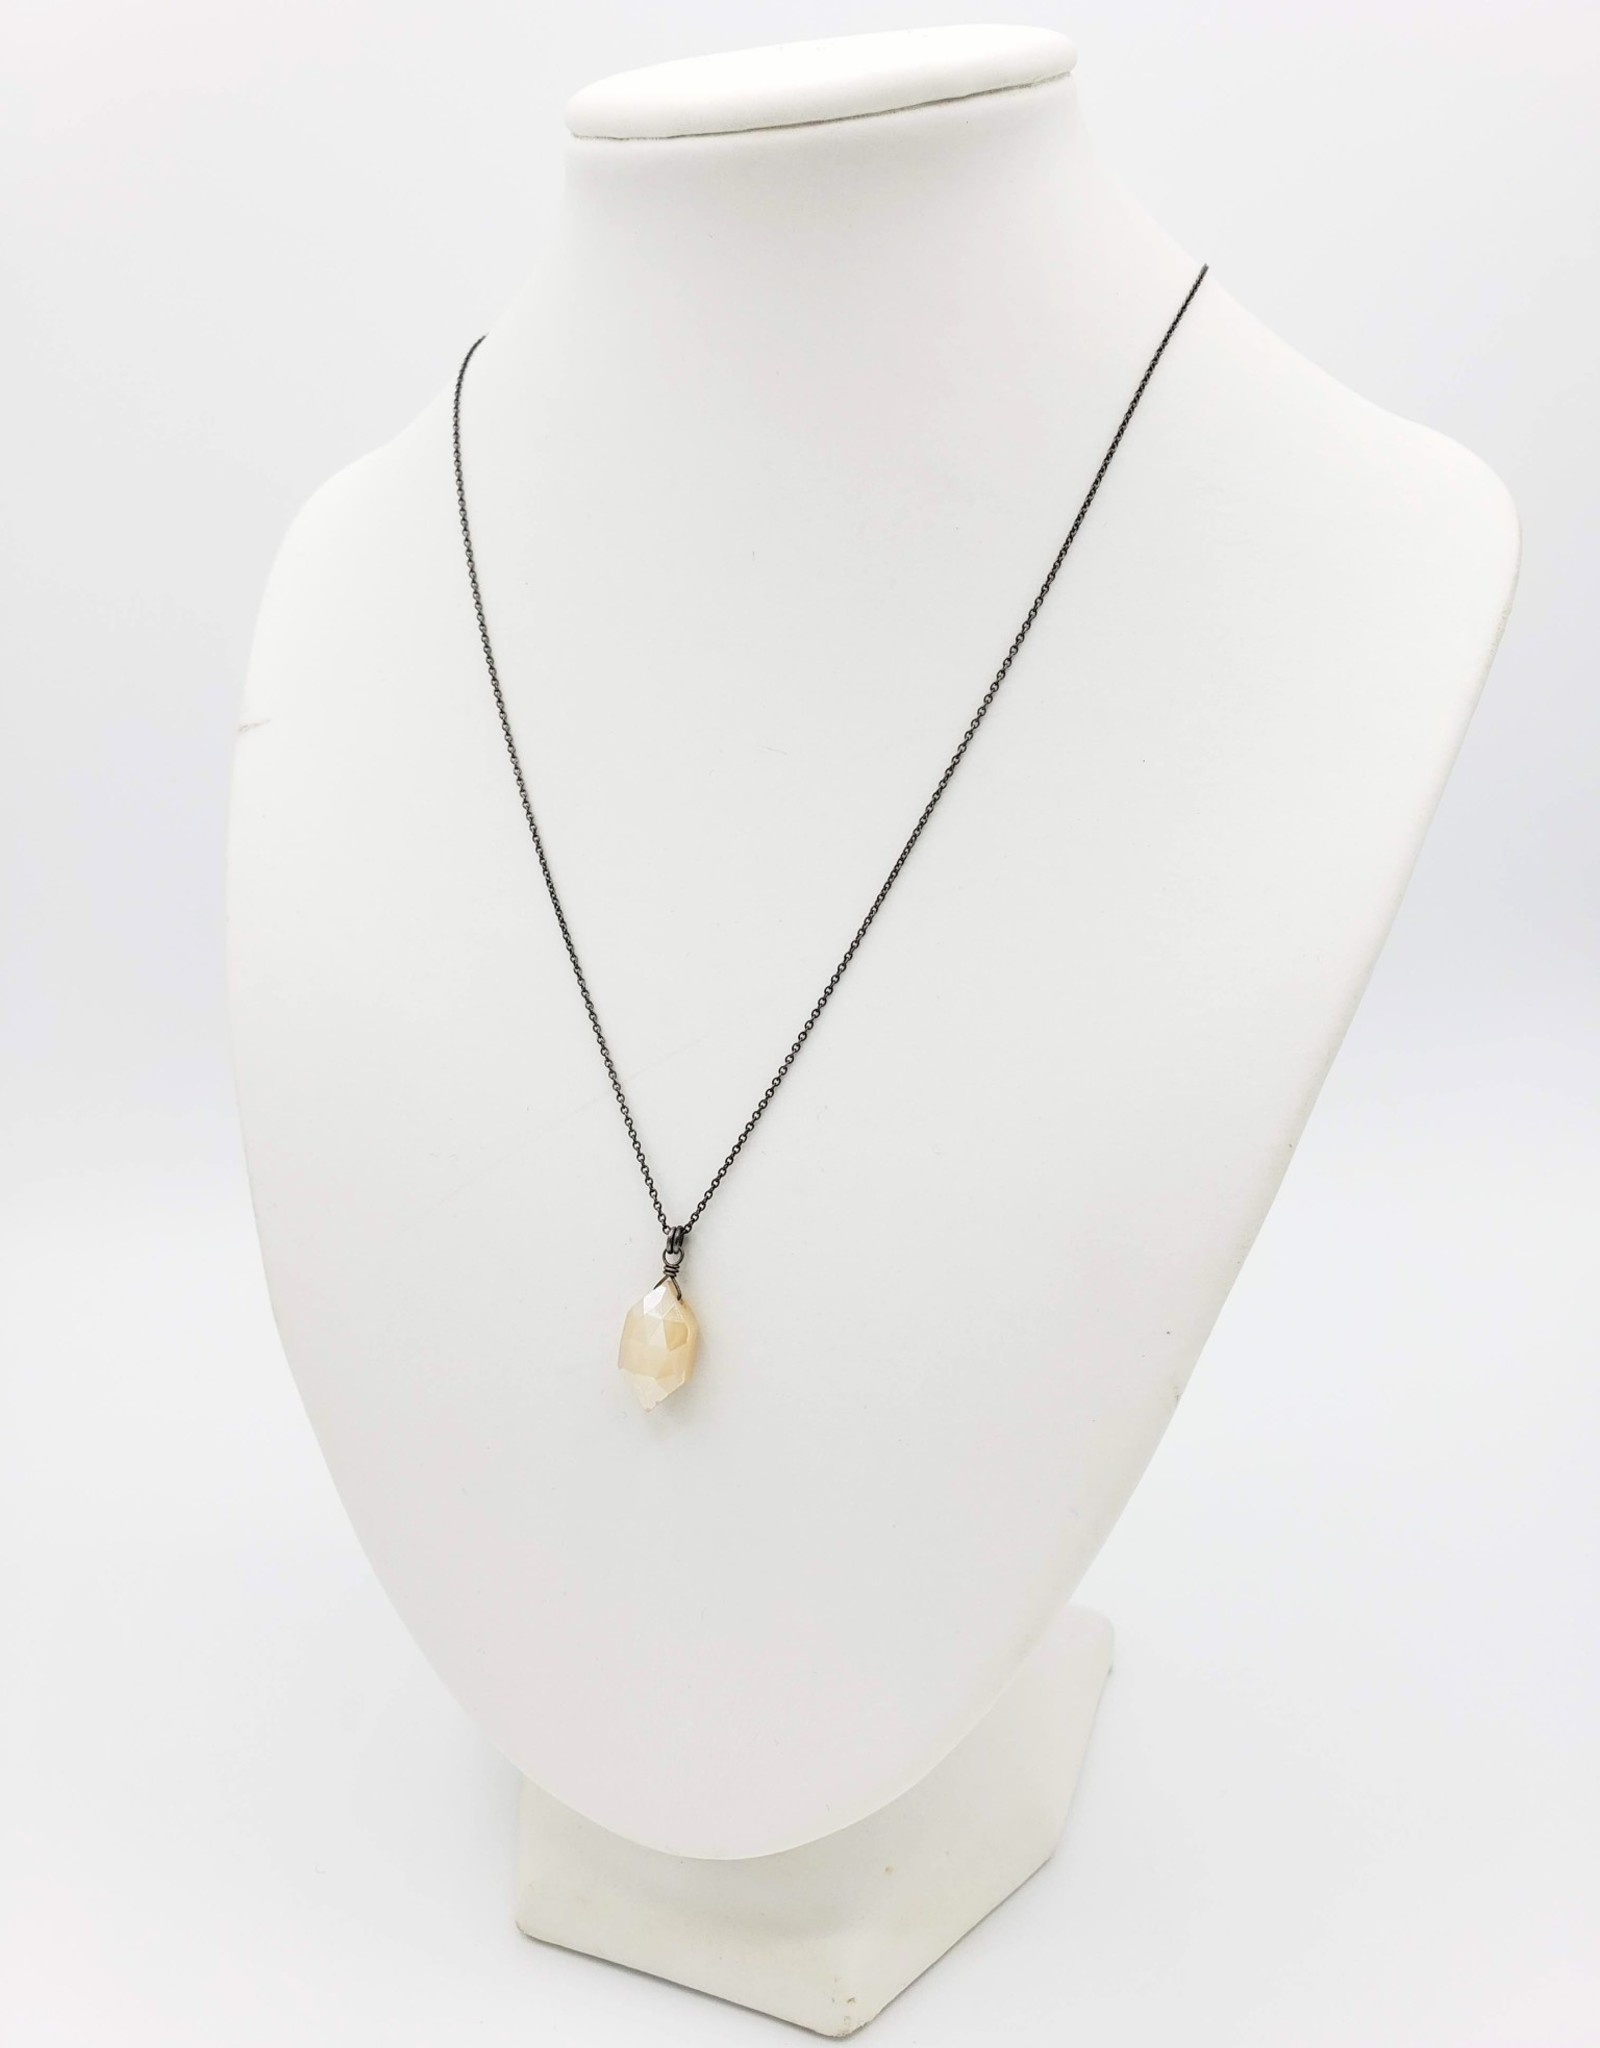 Moonstone Collection - Hexagon Silver, Light Moonstone Necklace